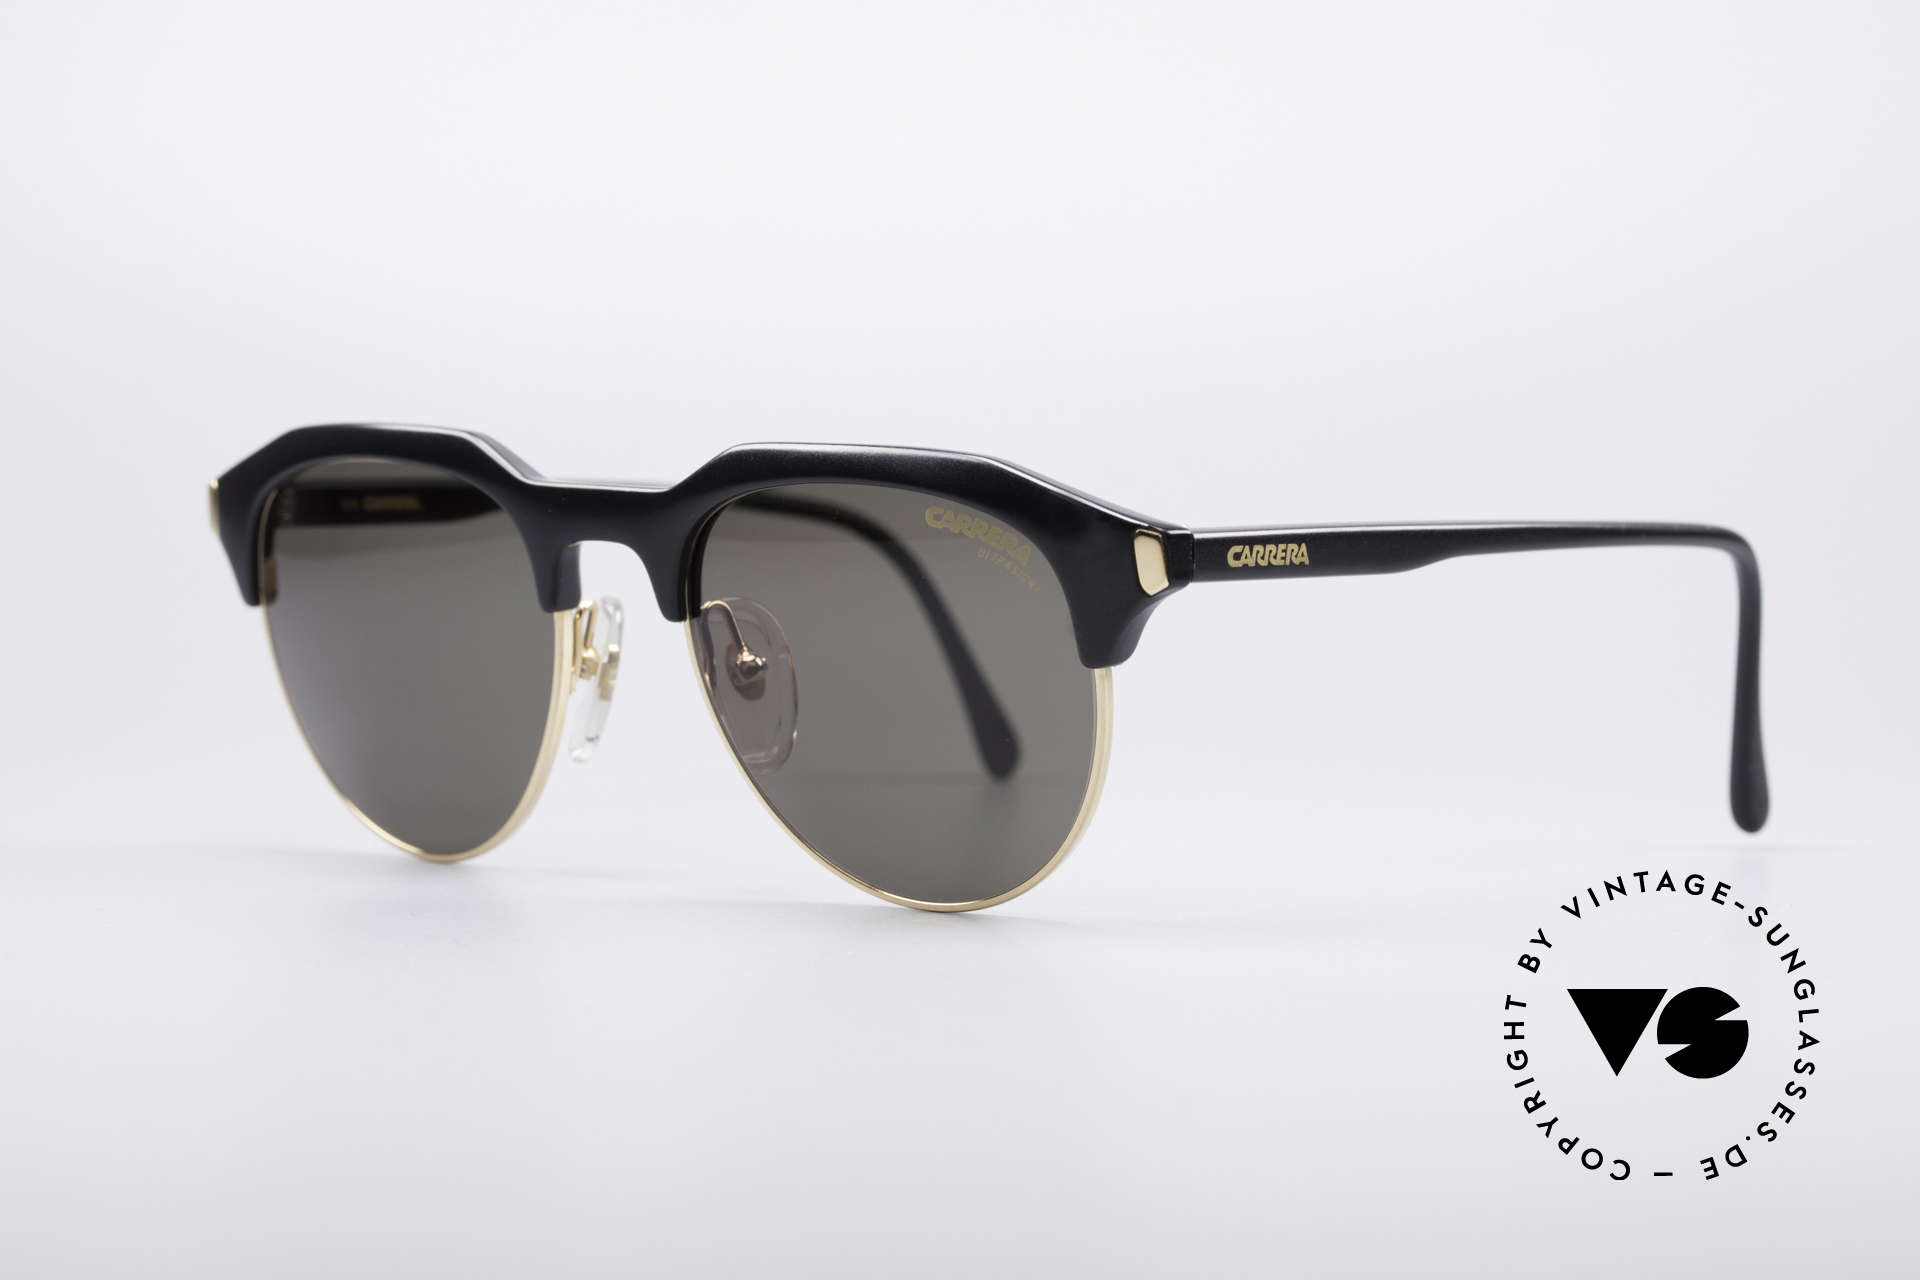 Carrera 5475 Vintage Panto Sunglasses, distinctive frame design and high-end Optyl quality, Made for Men